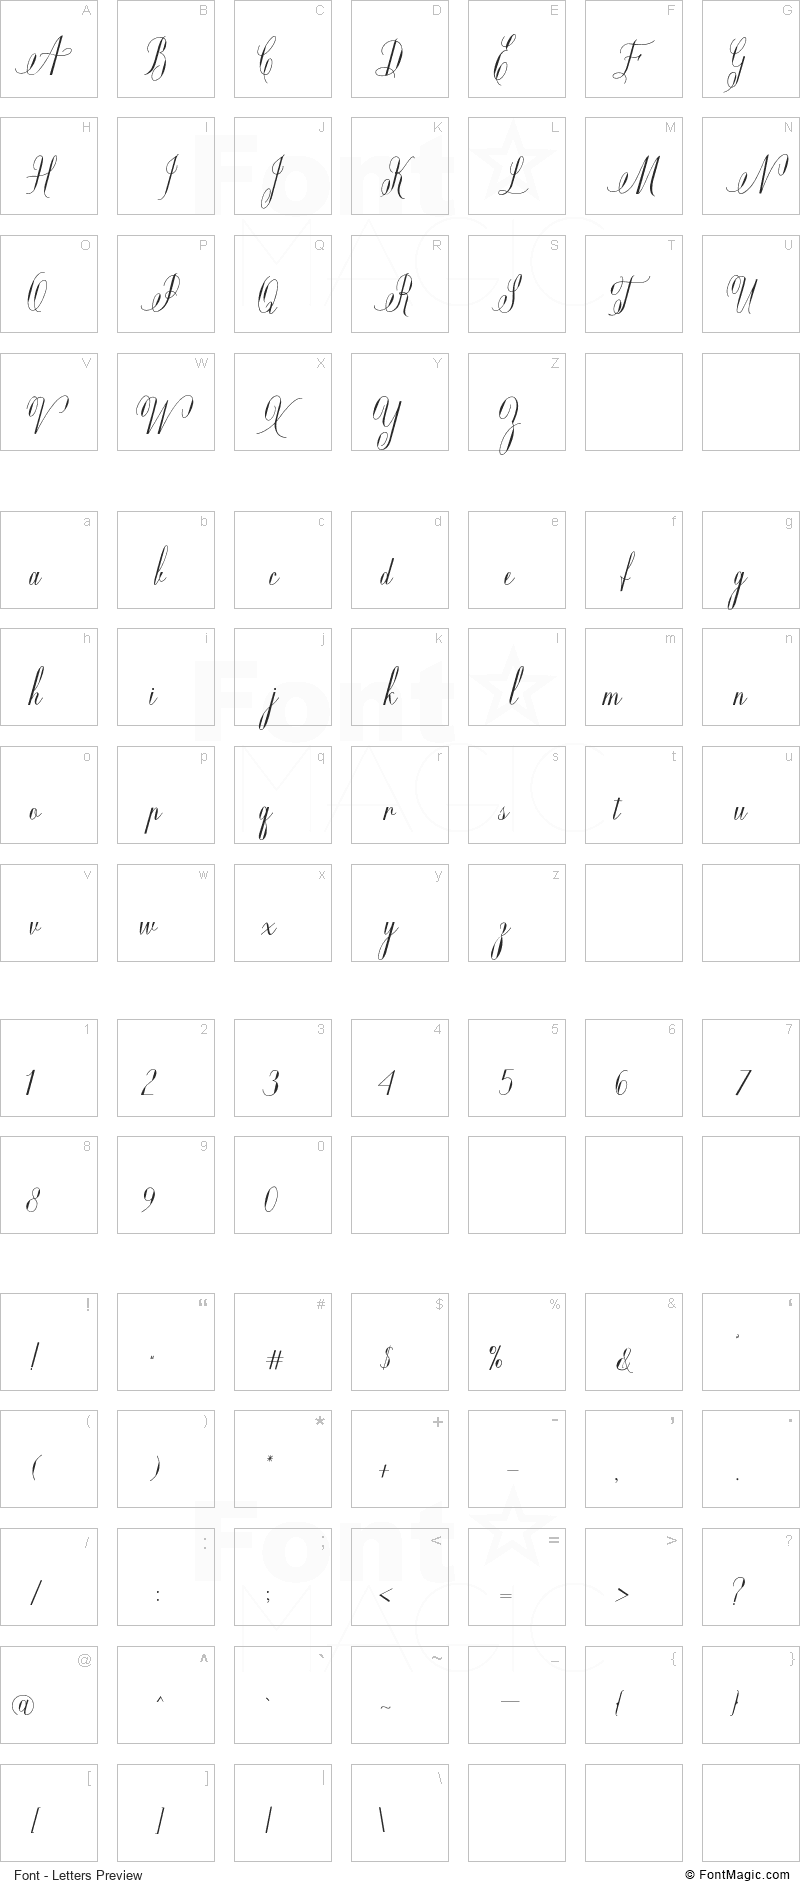 Mildistance Font - All Latters Preview Chart